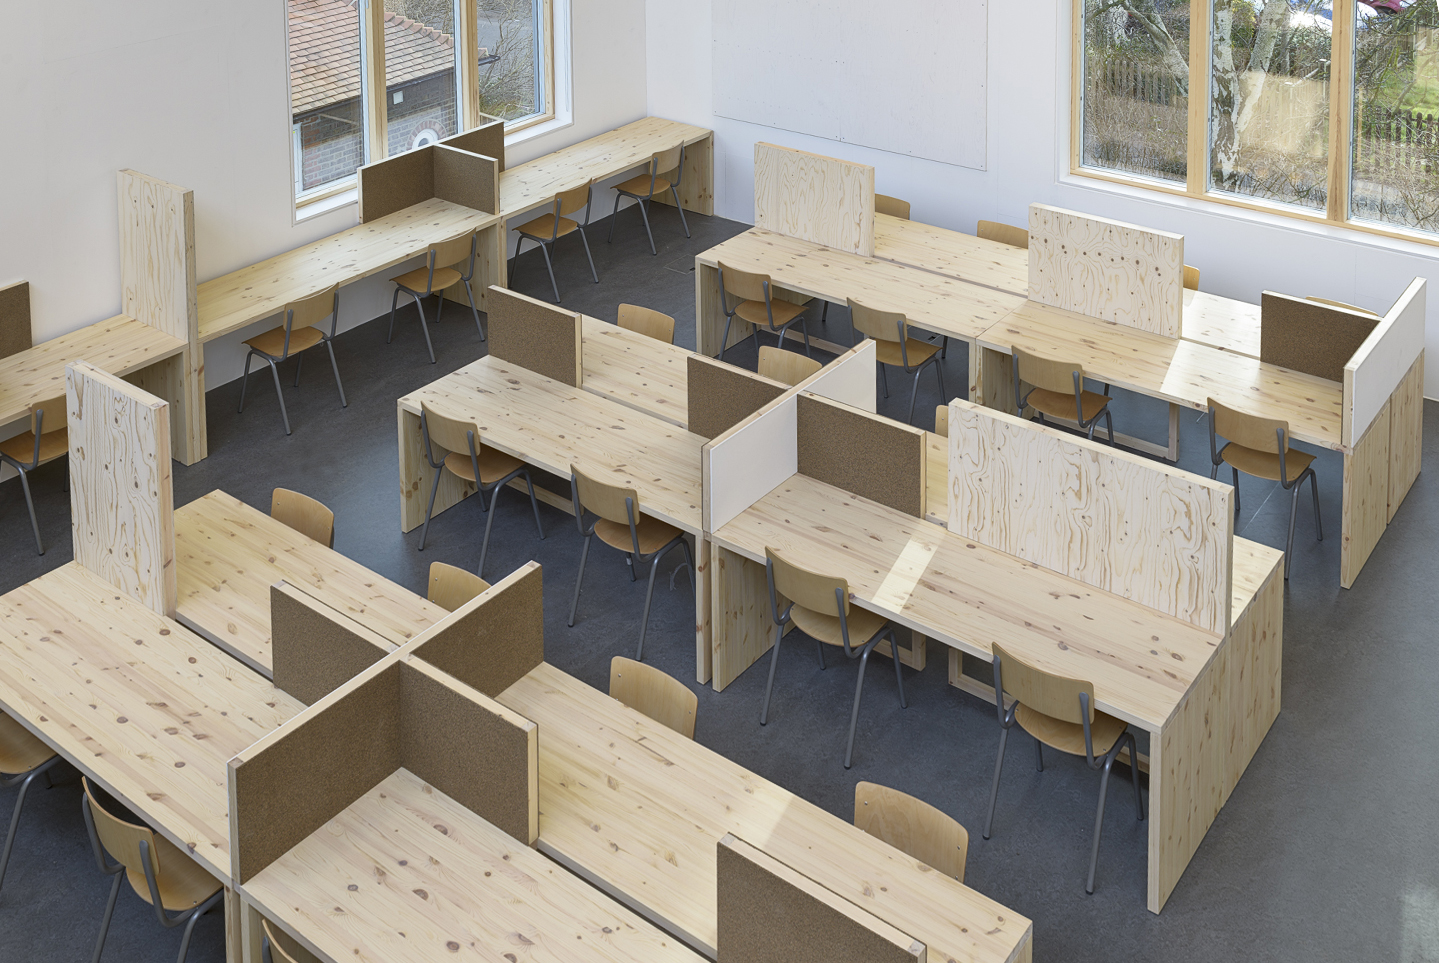 Wimbledon College of Art  January2015  The interiorwe designed for the new studio building at Wimbledon College of Art has just been installed. Desks for 80 students and a simple system of movable panels and desk screens. Read more  here .